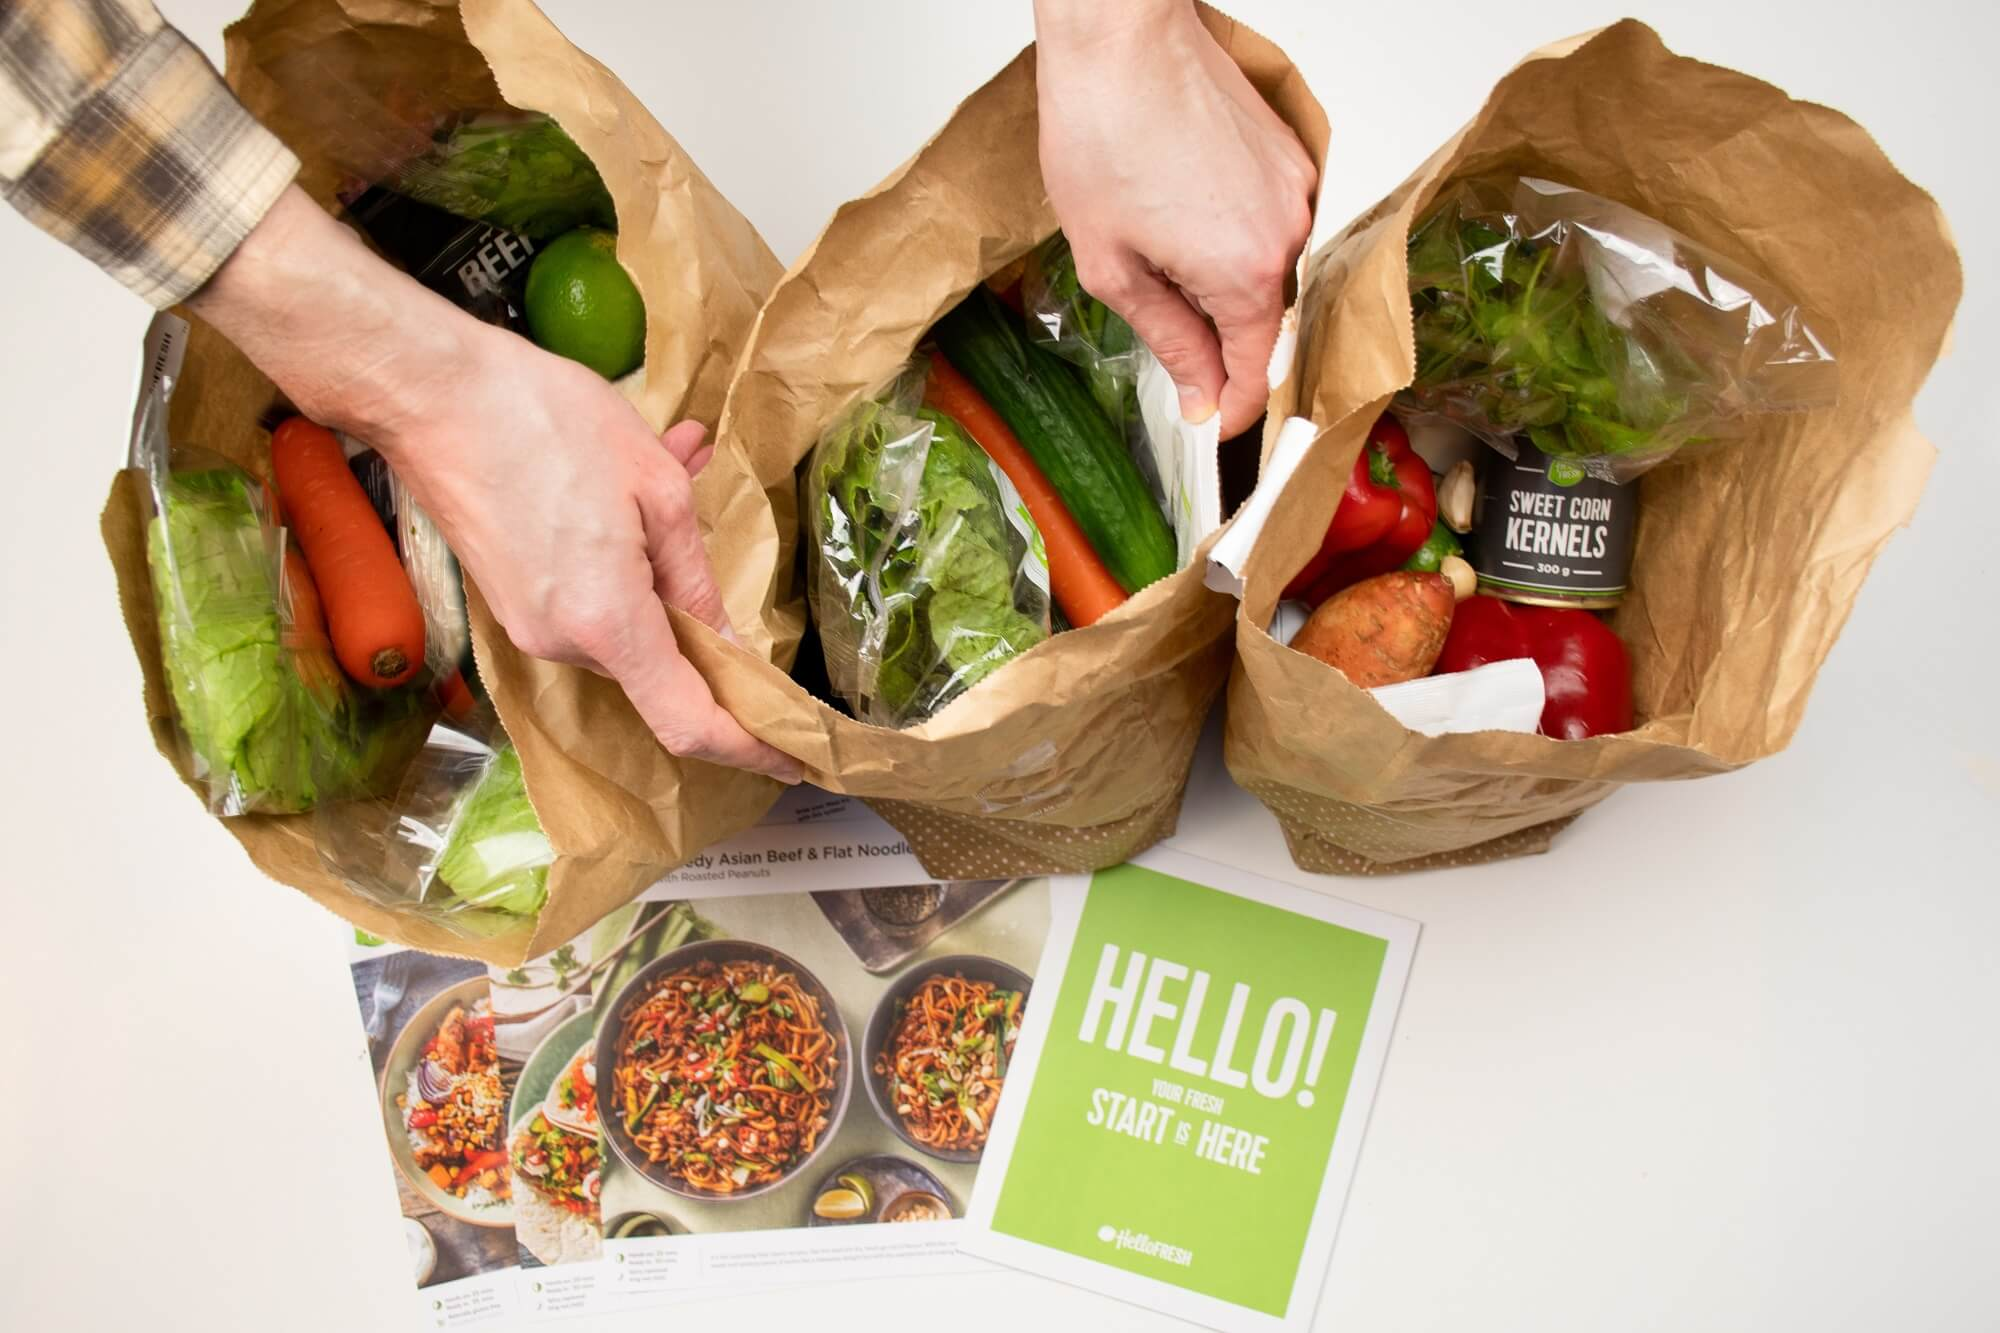 Hello Fresh meal kit raw ingredients in a paper bag